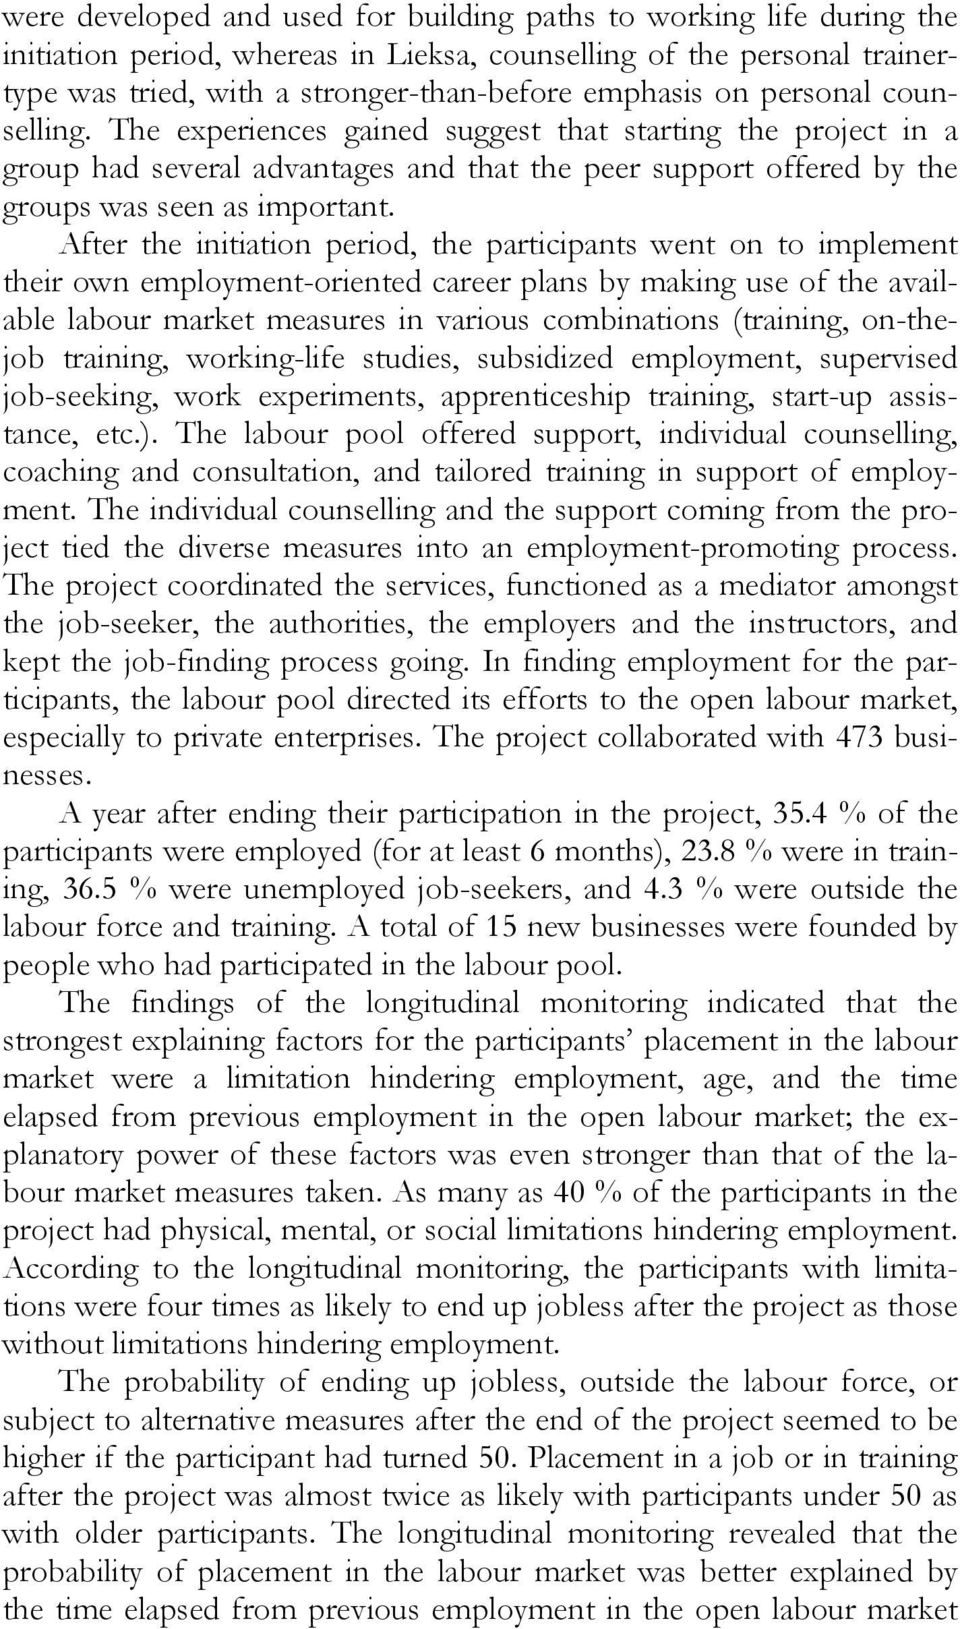 After the initiation period, the participants went on to implement their own employment-oriented career plans by making use of the available labour market measures in various combinations (training,